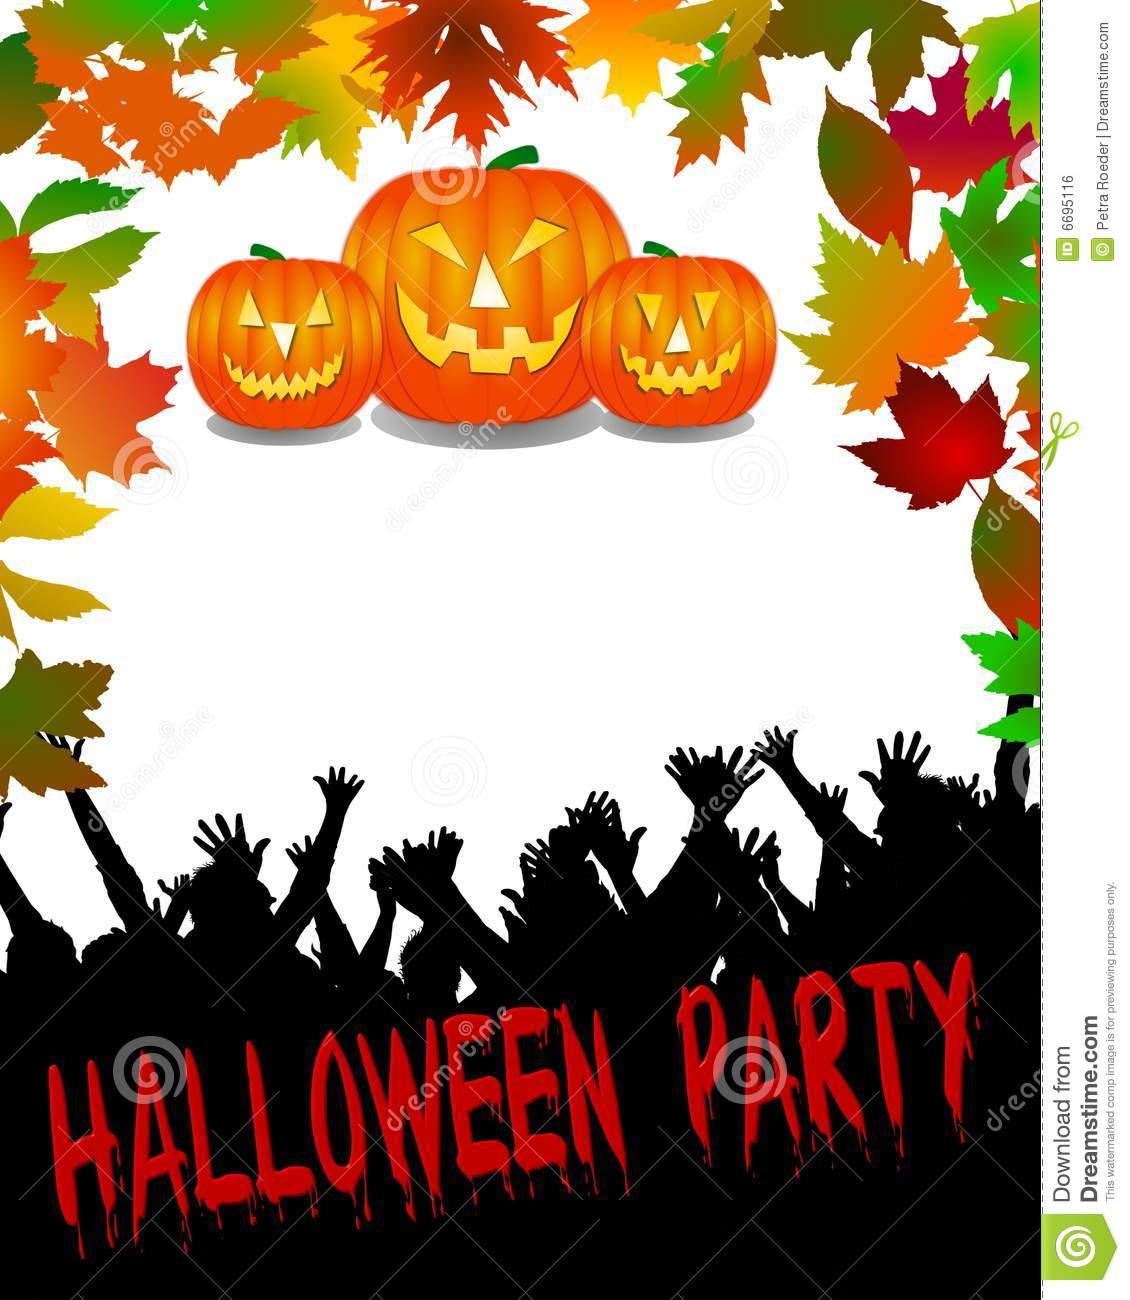 Halloween Party Background Royalty Free Stock Image - Image: 6695116